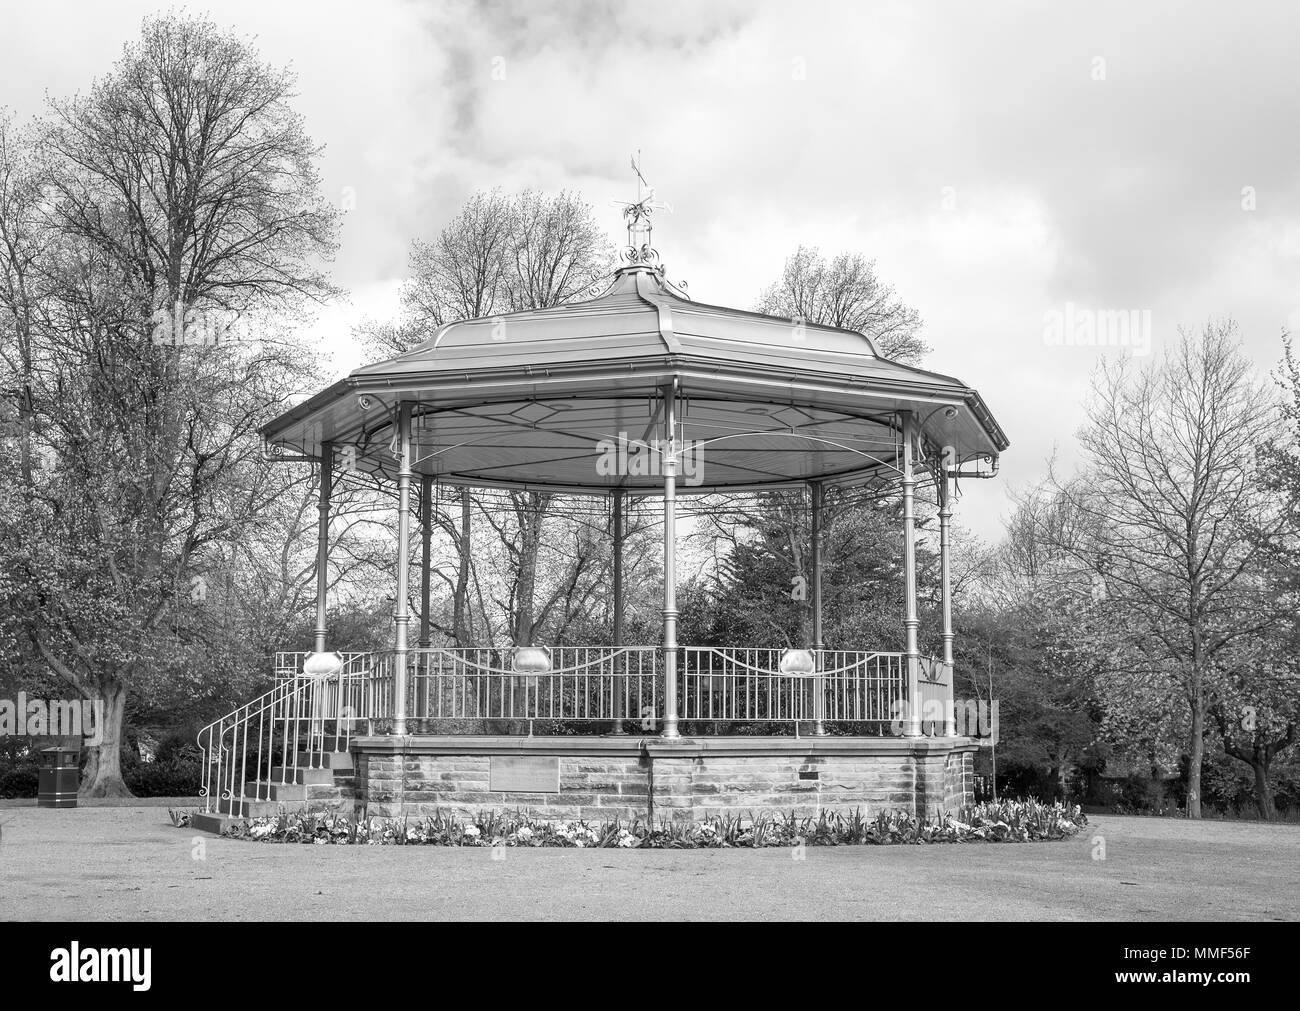 Bandstand and park ground in Ilkeston, Derbyshire, UK - Stock Image